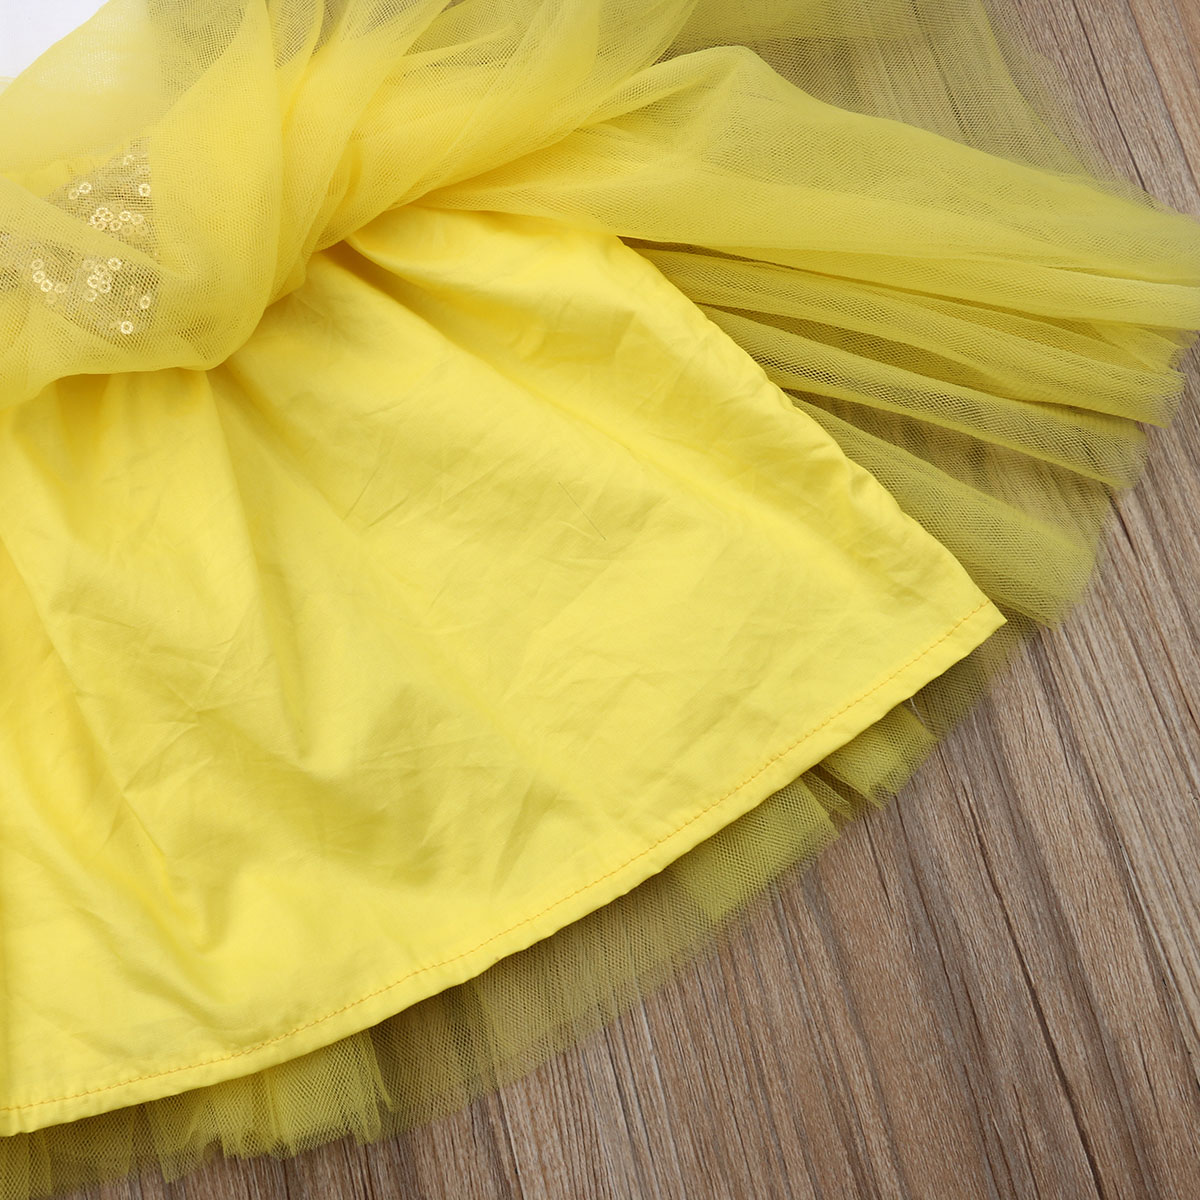 0 24M Baby Girl 1st Birthday Tutu Short Sleeves Sunflower Letter Print Romper Tops Bowknot Pleated Solid Cake Skirt 2Pcs Outfits in Clothing Sets from Mother Kids